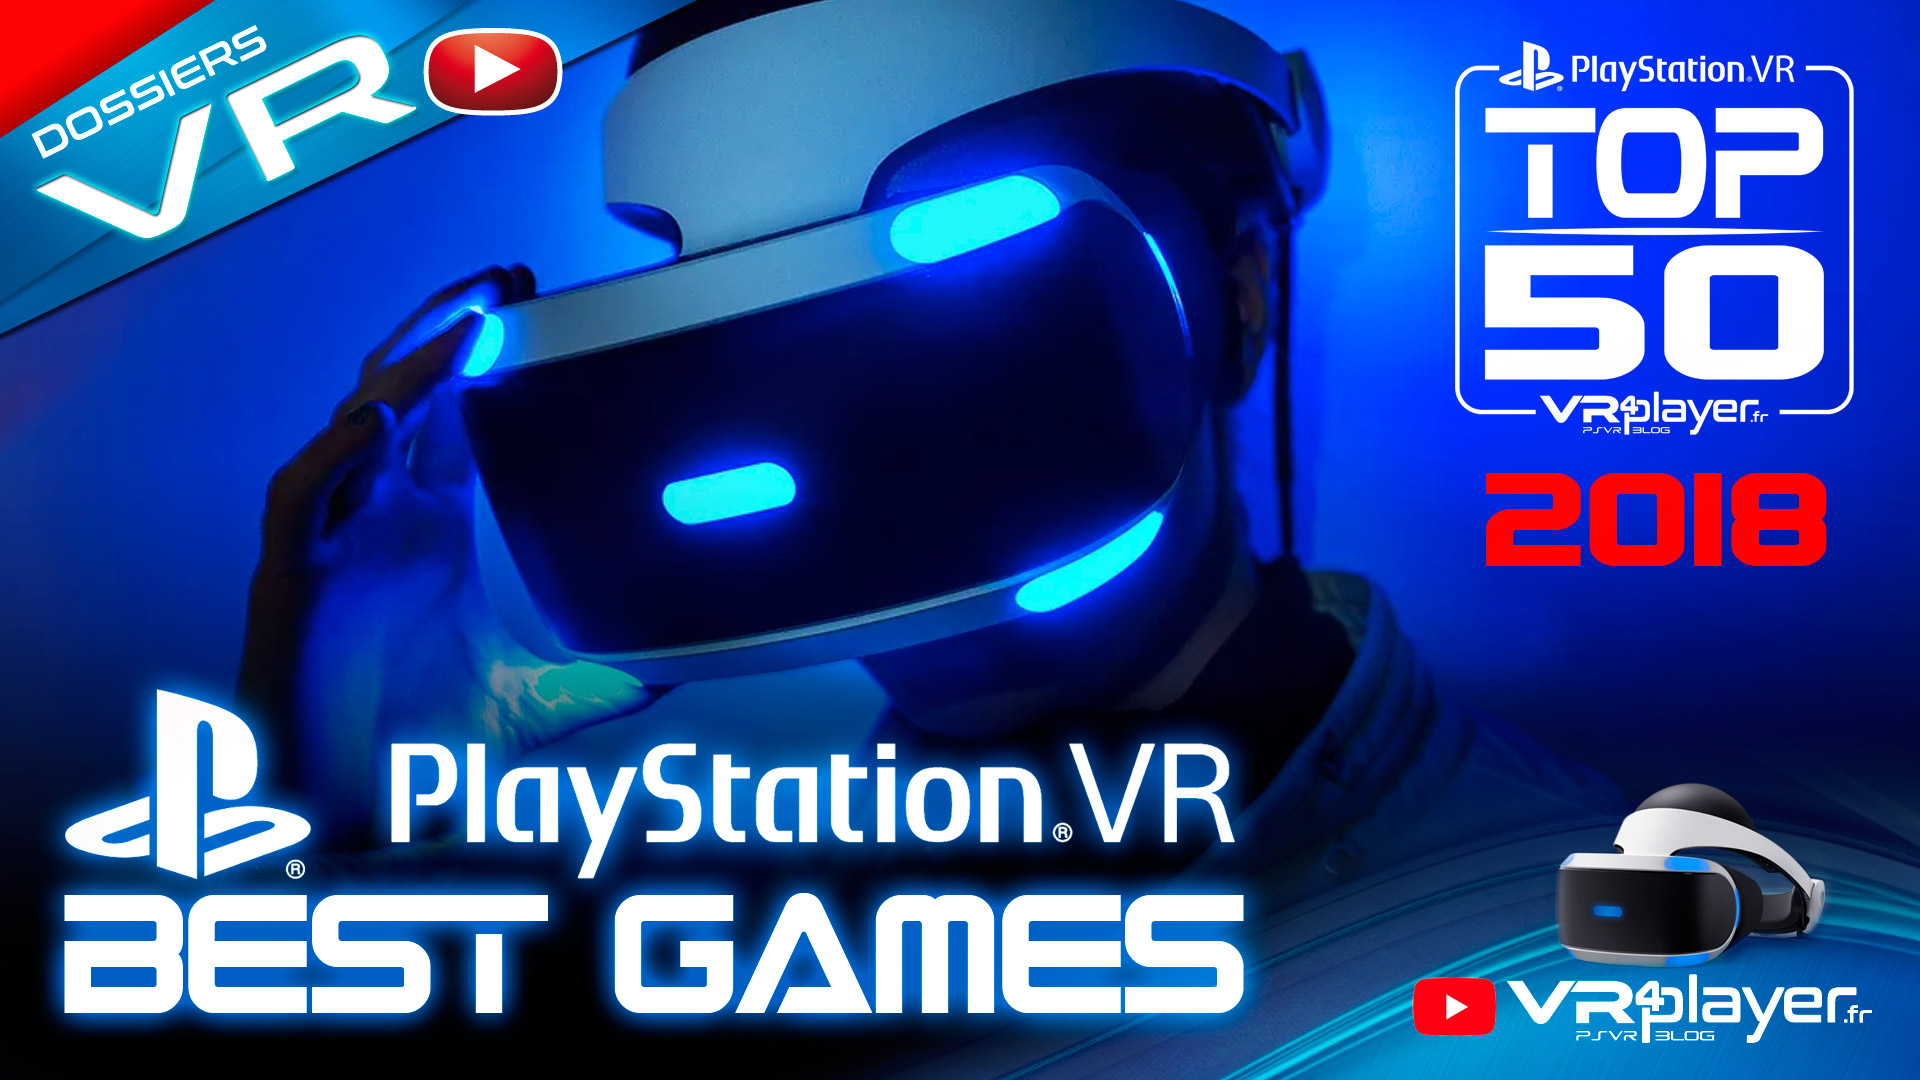 TOP 50 best games PSVR 2018 VR4player